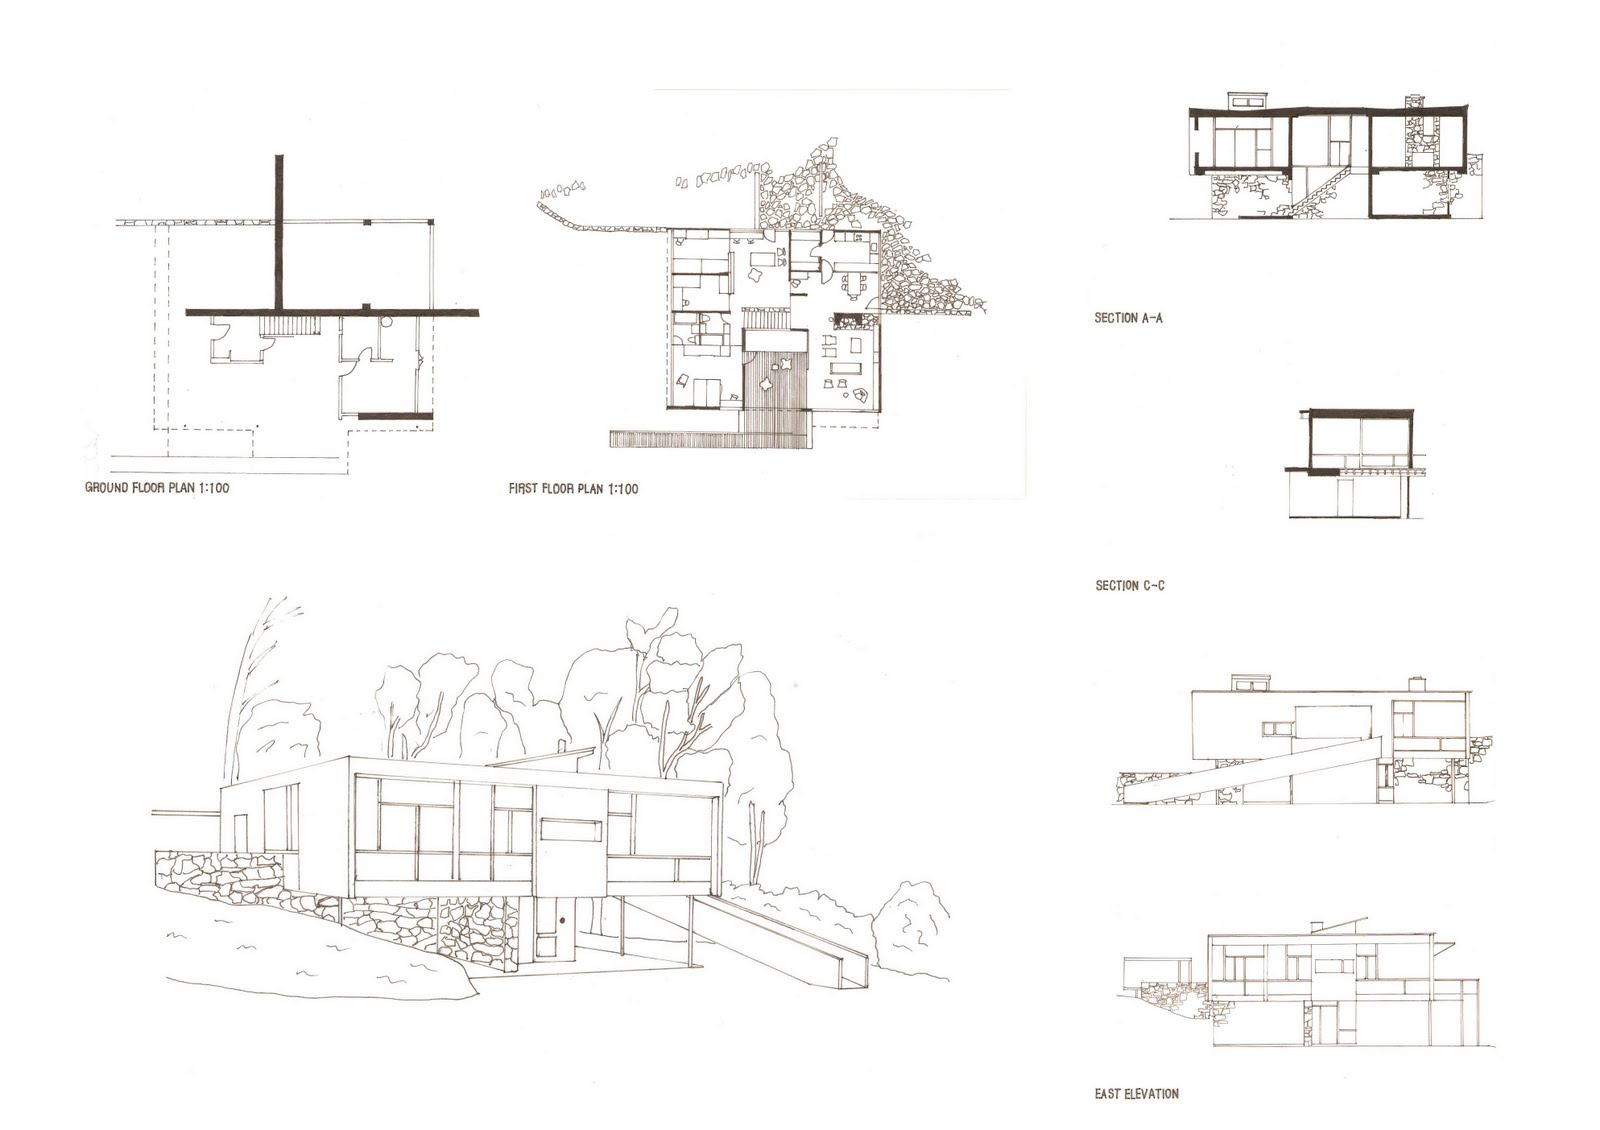 kyuil leeFinal submission for the Rose Seidler House drawings   Since I wanted to keep all the informations clear in the drawings  I made the drawings simple